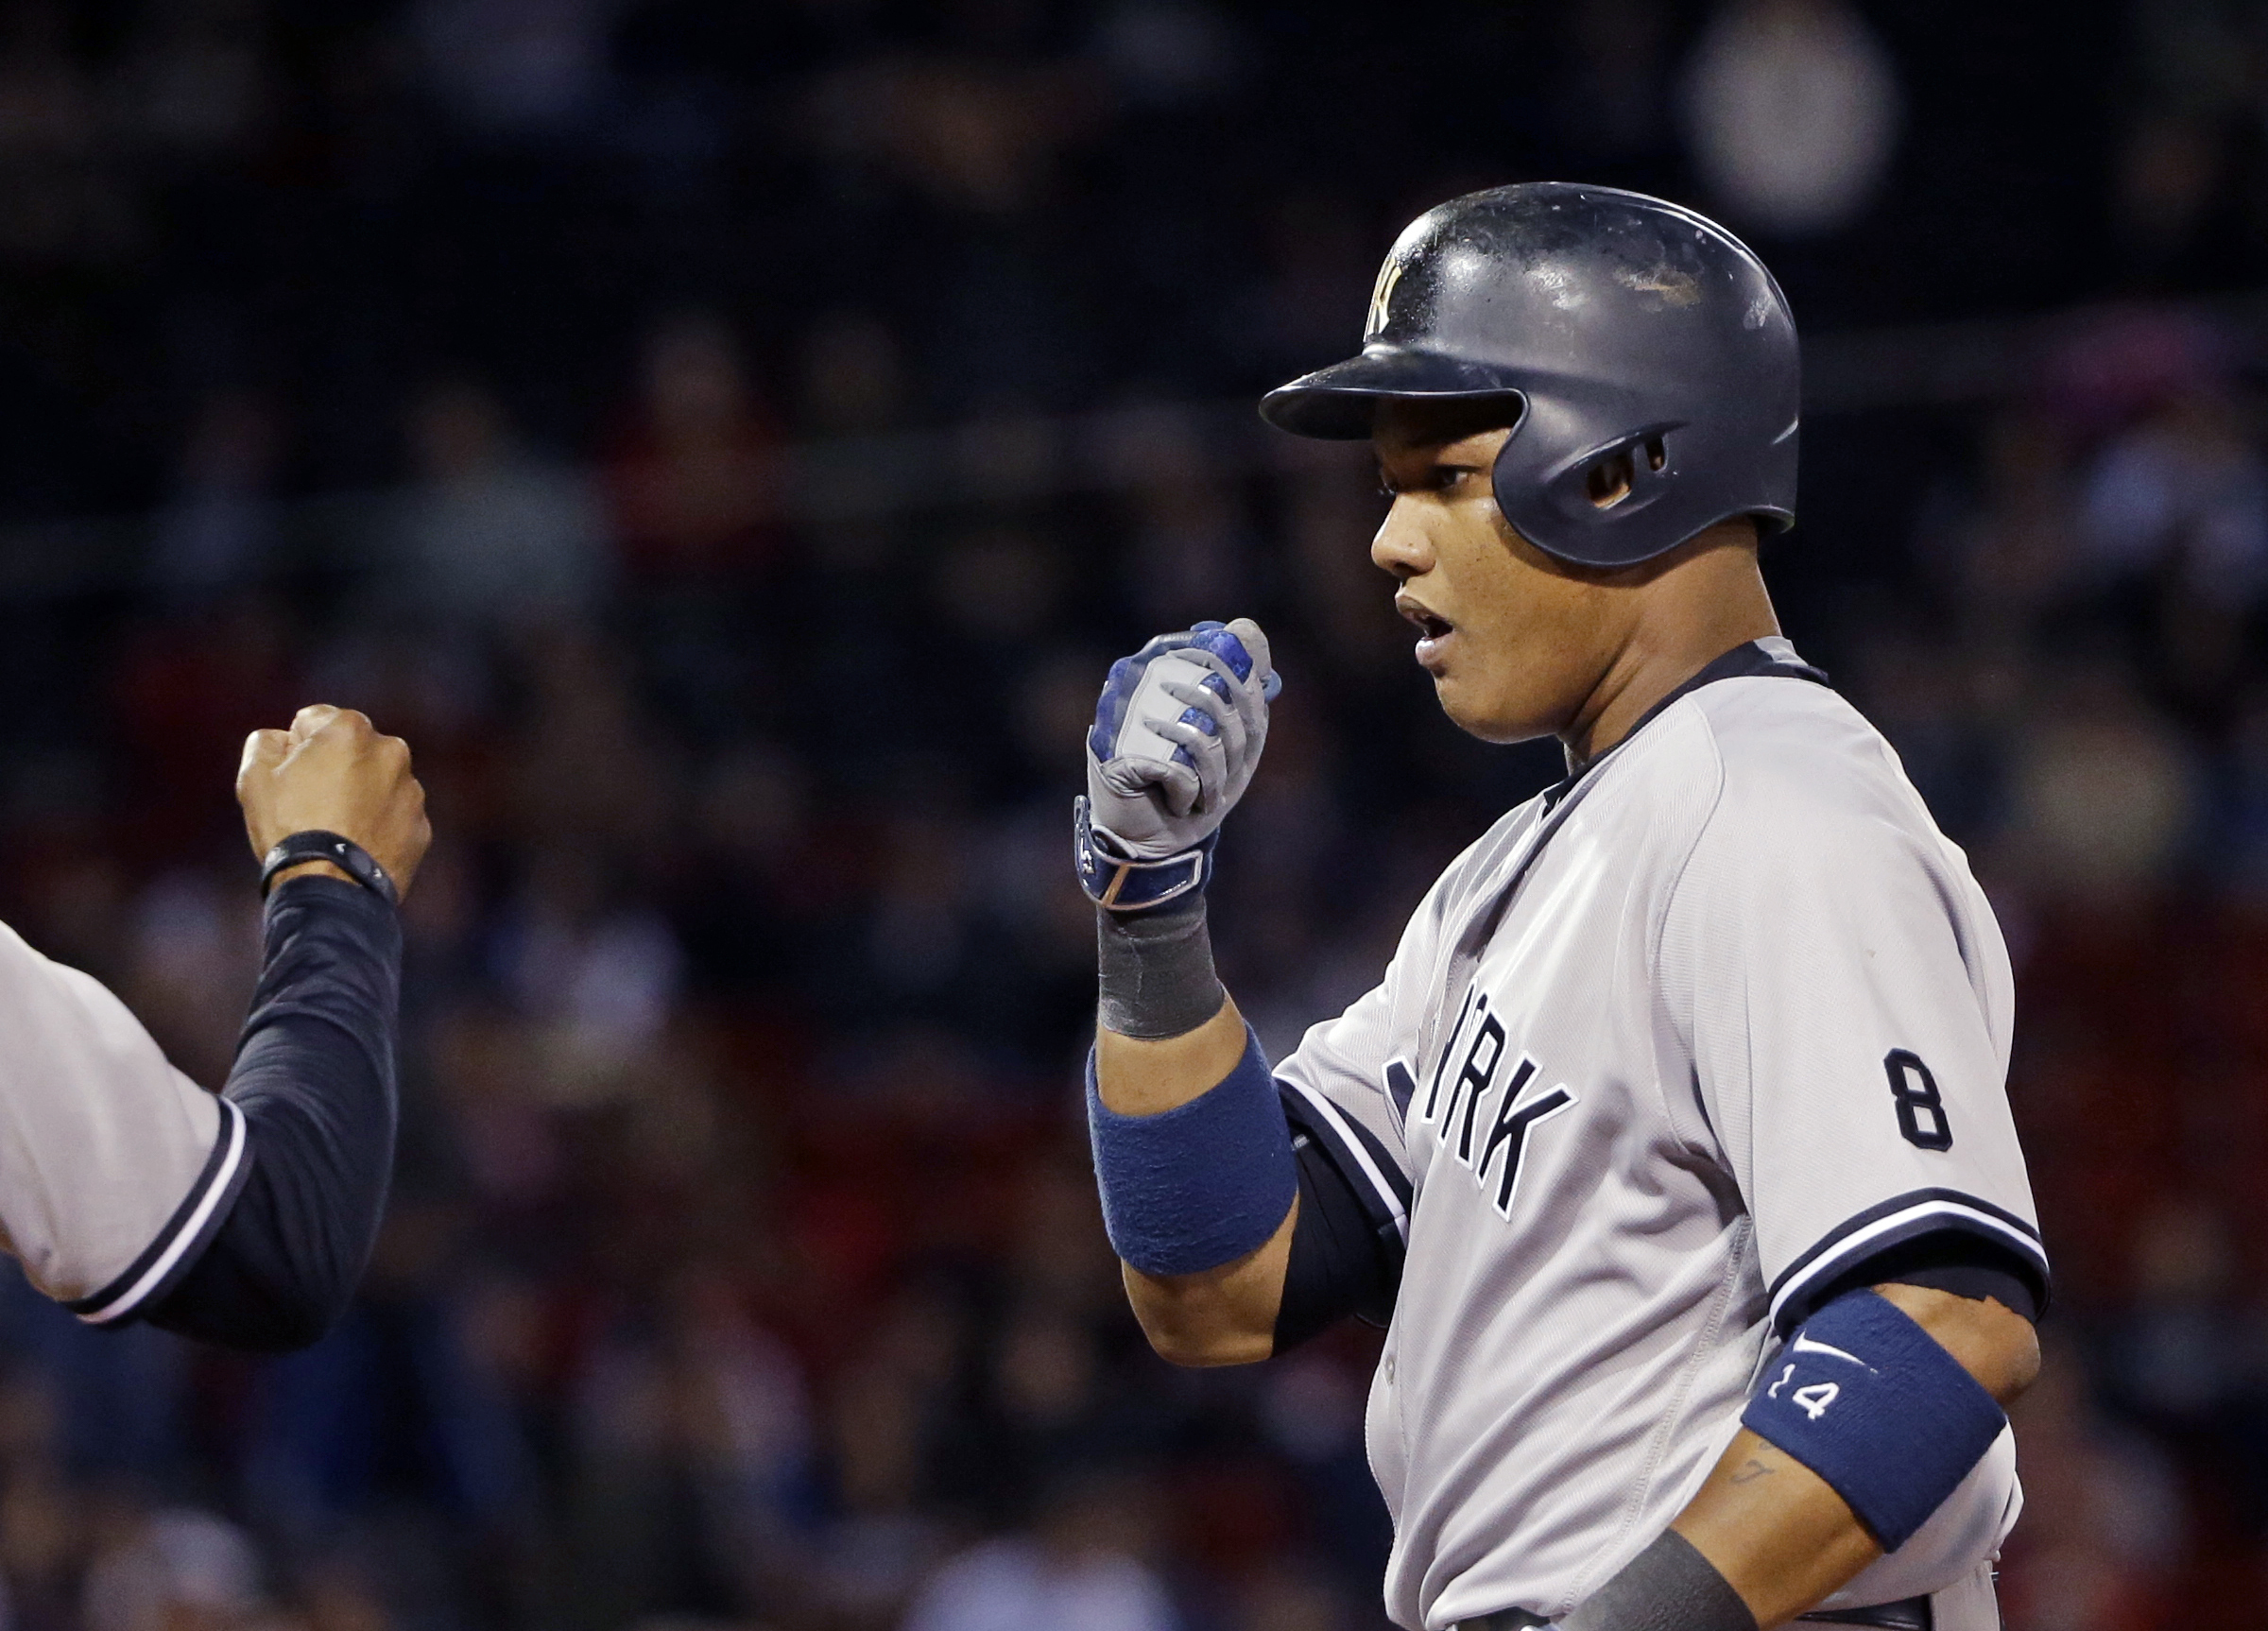 New York Yankees' Starlin Castro celebrates after hitting a single during the ninth inning of a baseball game against the Boston Red Sox at Fenway Park, Thursday, Sept. 15, 2016, in Boston. (AP Photo/Elise Amendola)